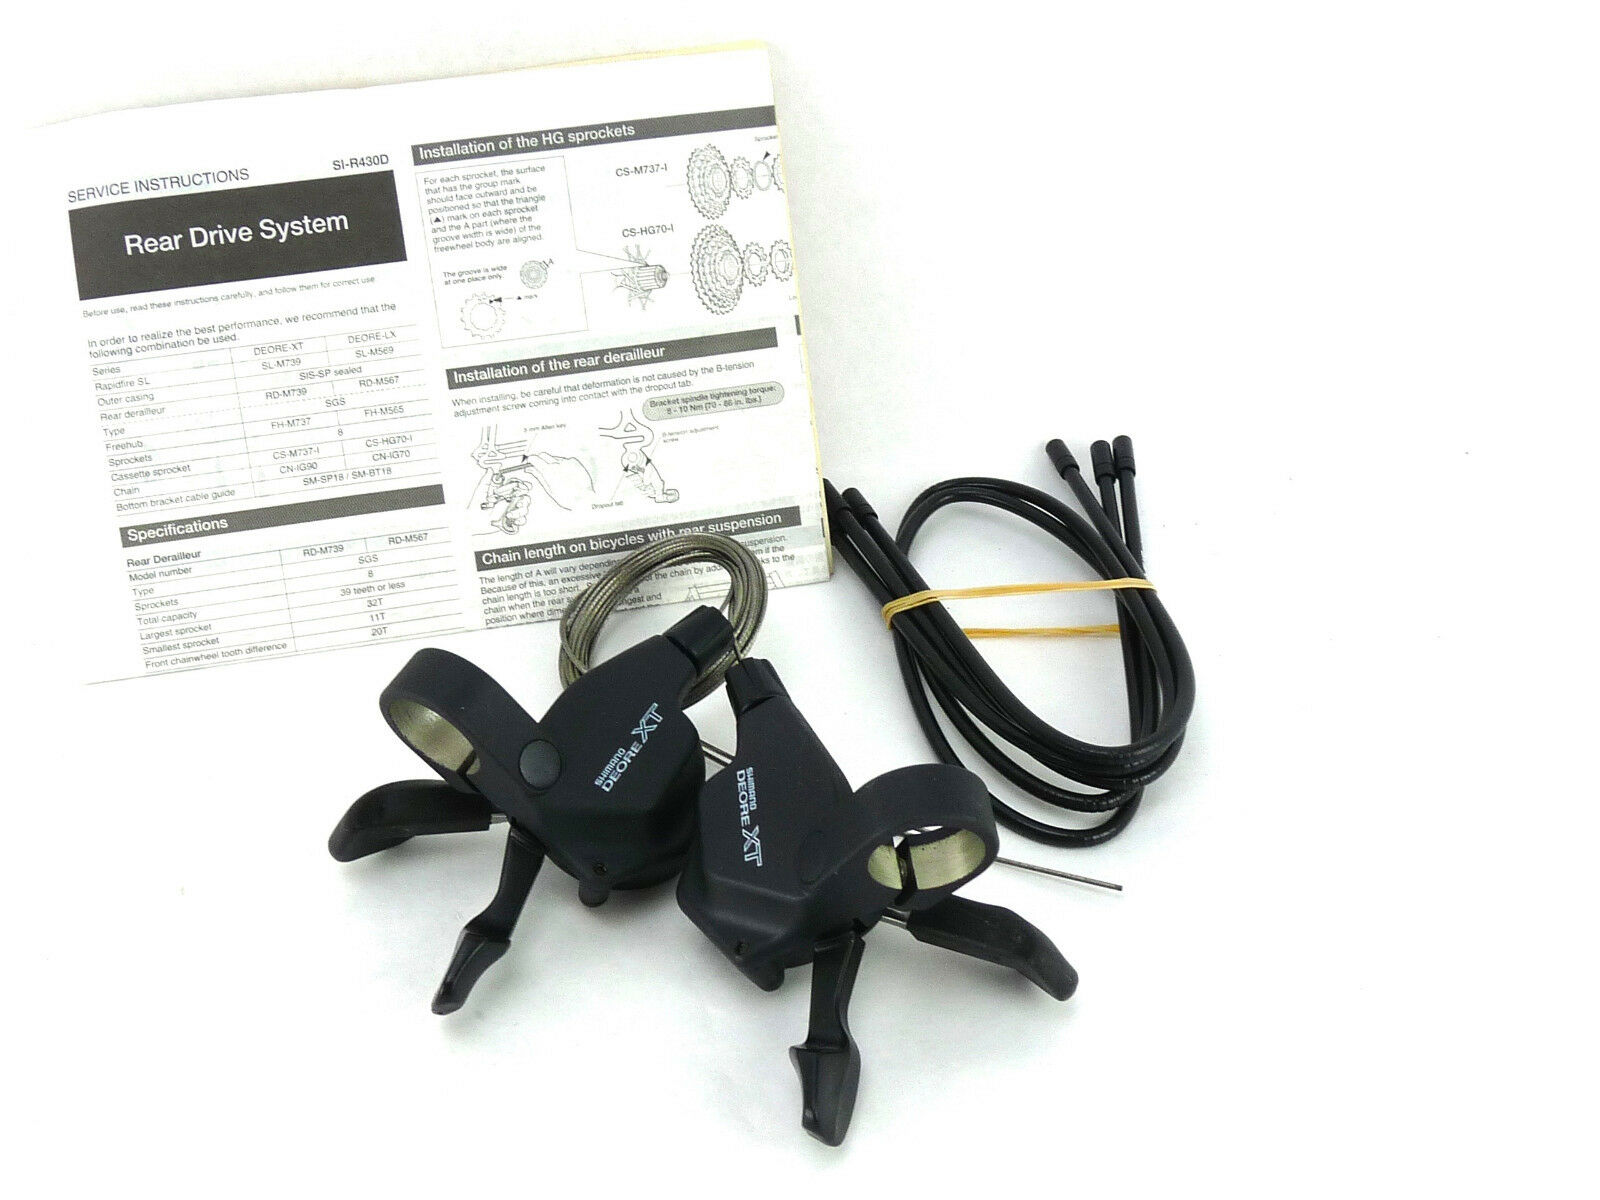 Shimano XT  Shifters M739 8 Speed Vintage MTB Bike Pods Deore NOS  wholesale price and reliable quality